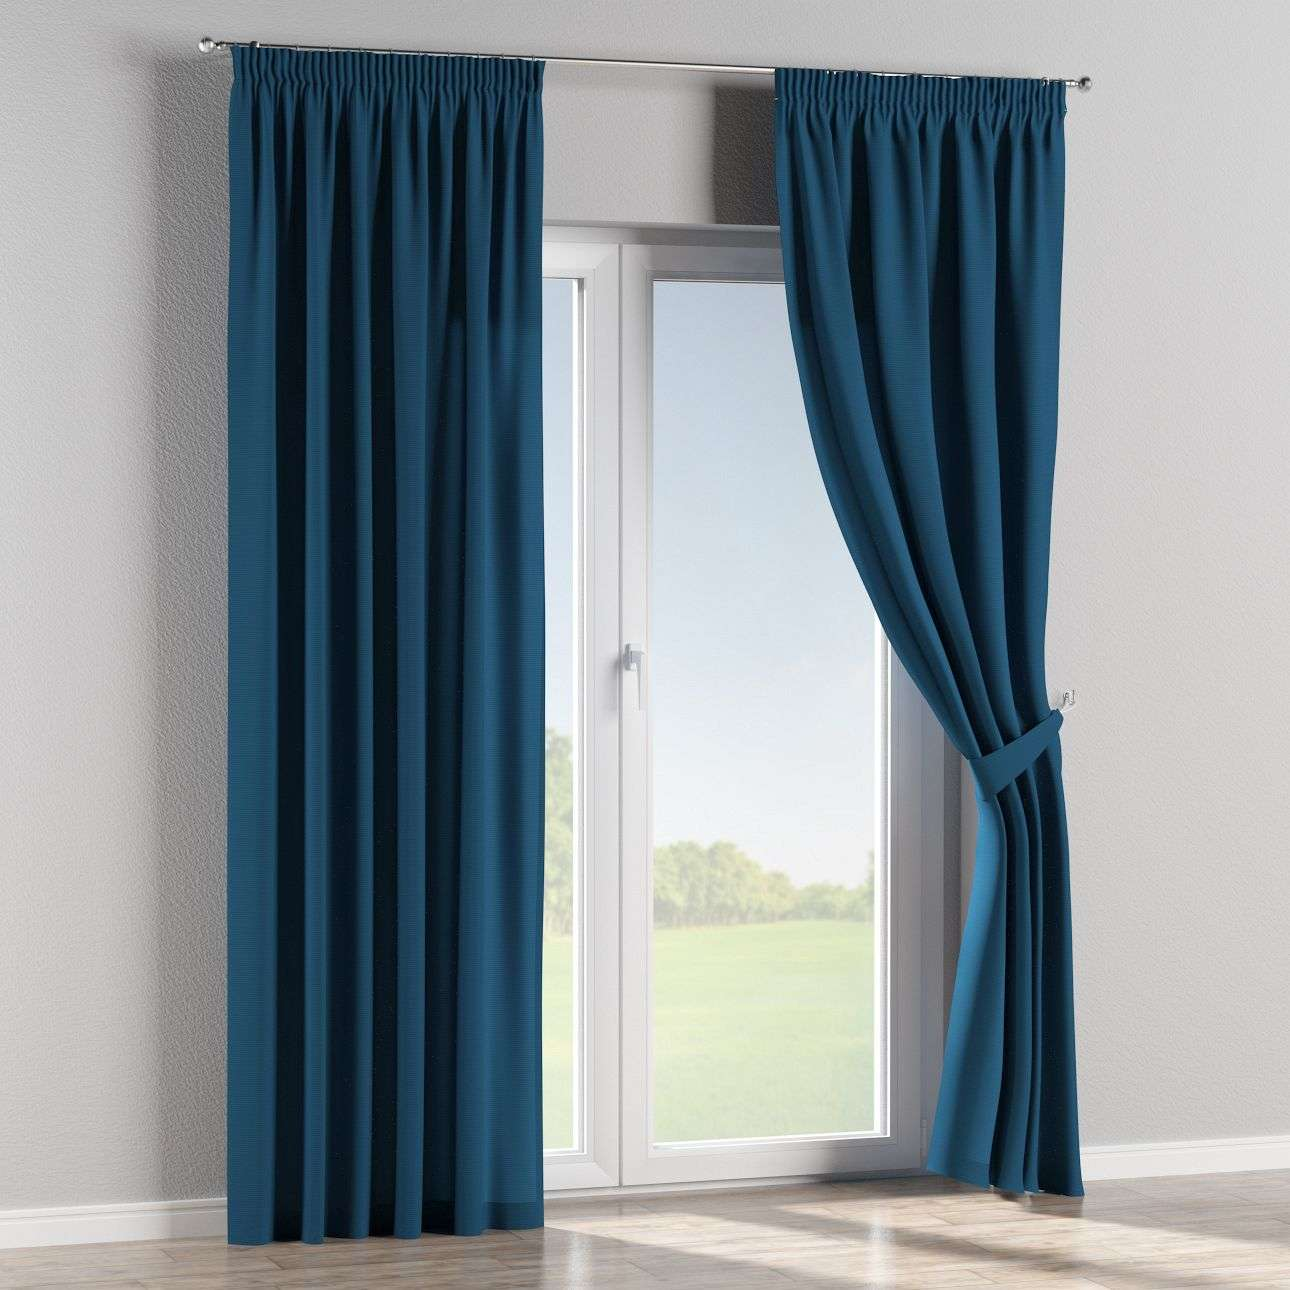 Pencil pleat curtains 130 x 260 cm (51 x 102 inch) in collection Panama Cotton, fabric: 702-30